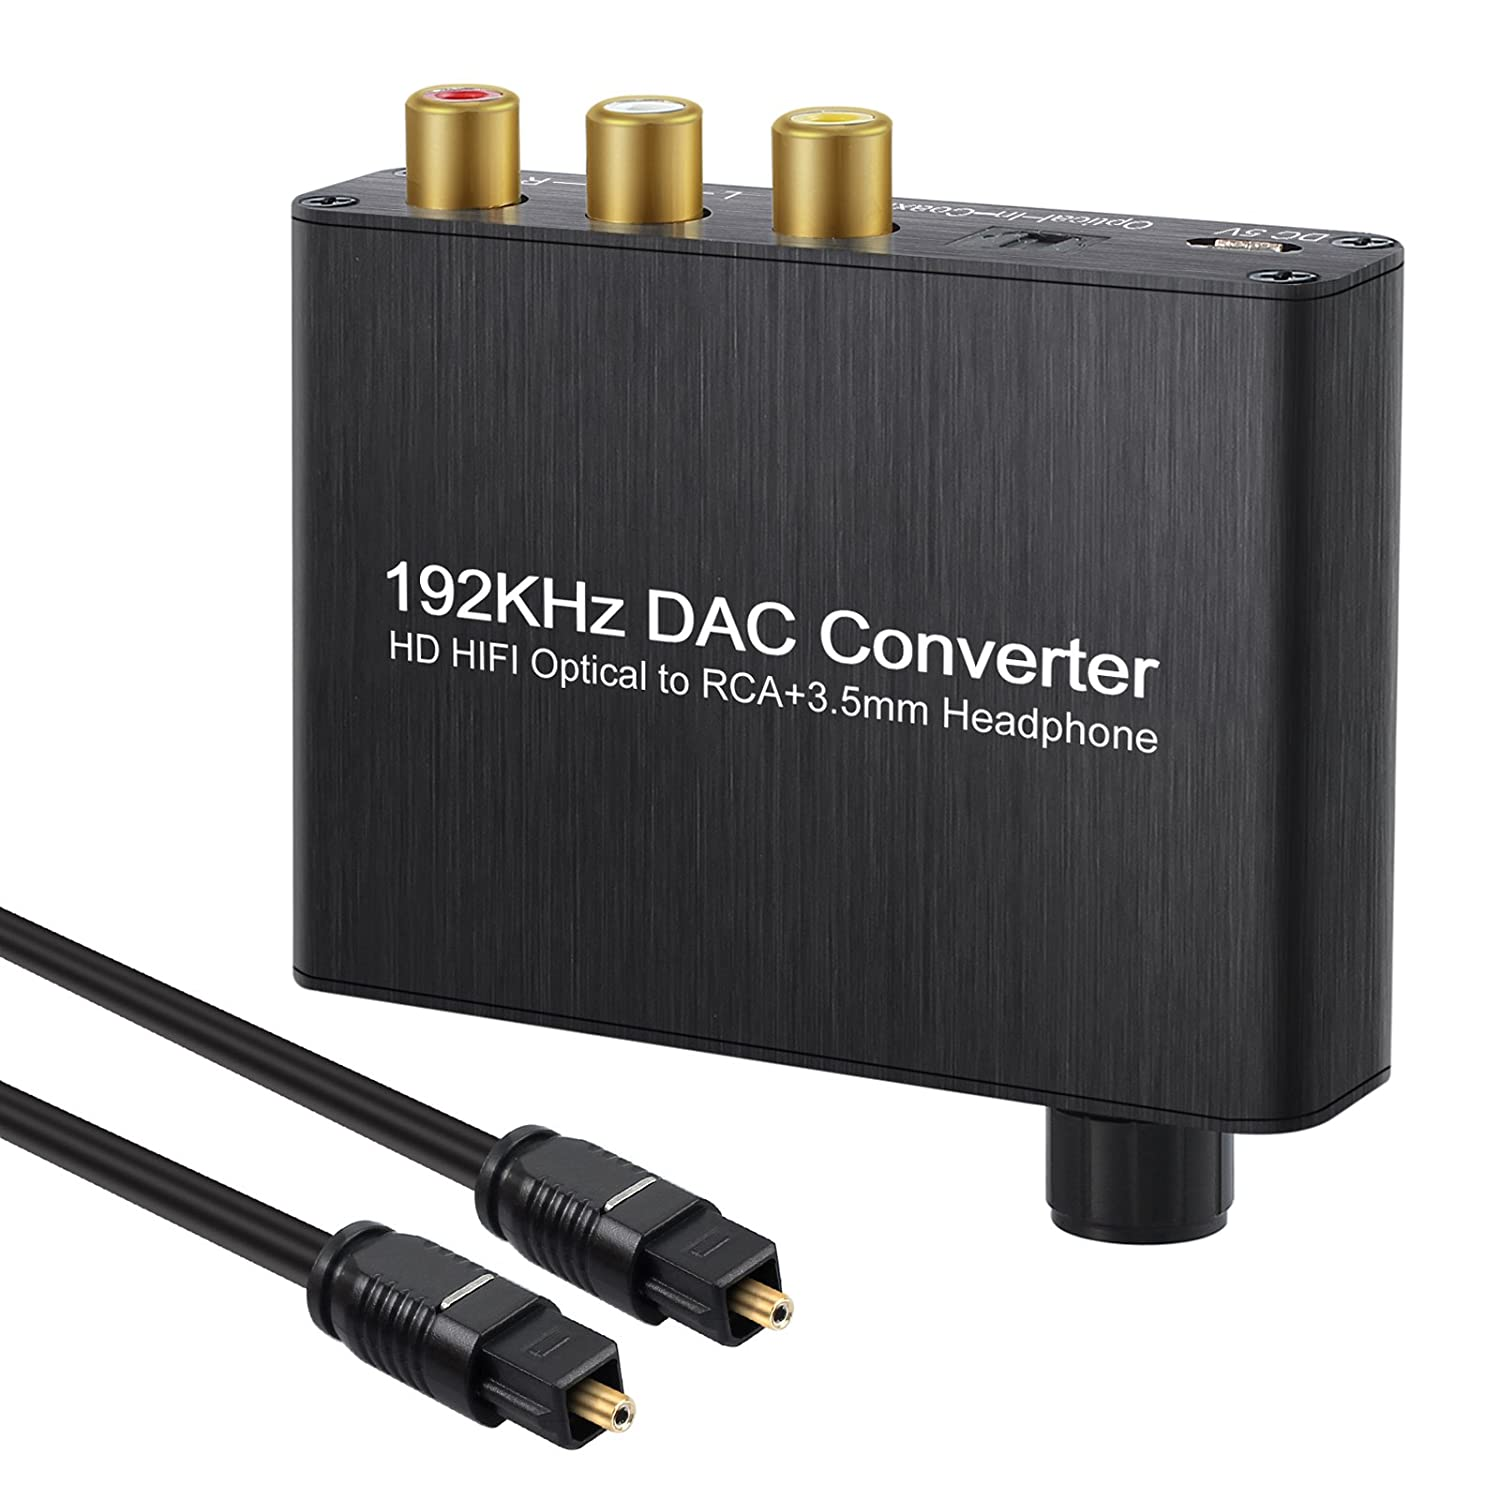 192kHz DAC Converter with Volume Adjustment Support DTS/Dolby AC3 5.1CH Digital SPDIF Coaxial Toslink to Analog Stereo Left/Right RCA 3.5mm Jack Audio Converter Proxima Direct